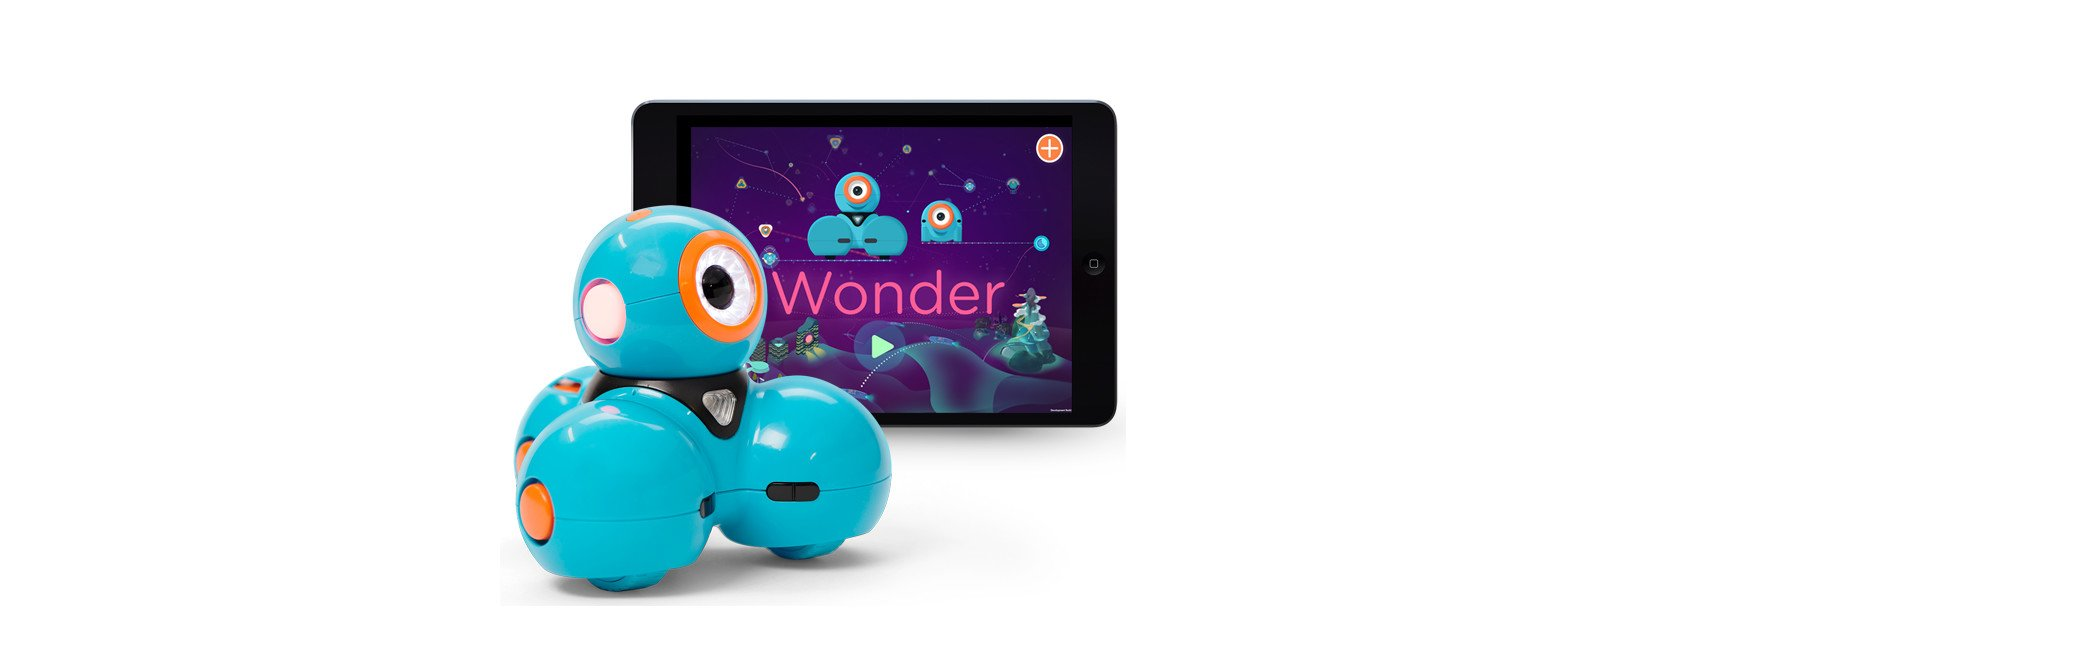 Wonder Workshop Dash - Coding Robot for Kids 6+ - Voice Activated - Navigates Objects - 5 Free Programming STEM Apps - Creating Confident Digital Citizens - wiihuu